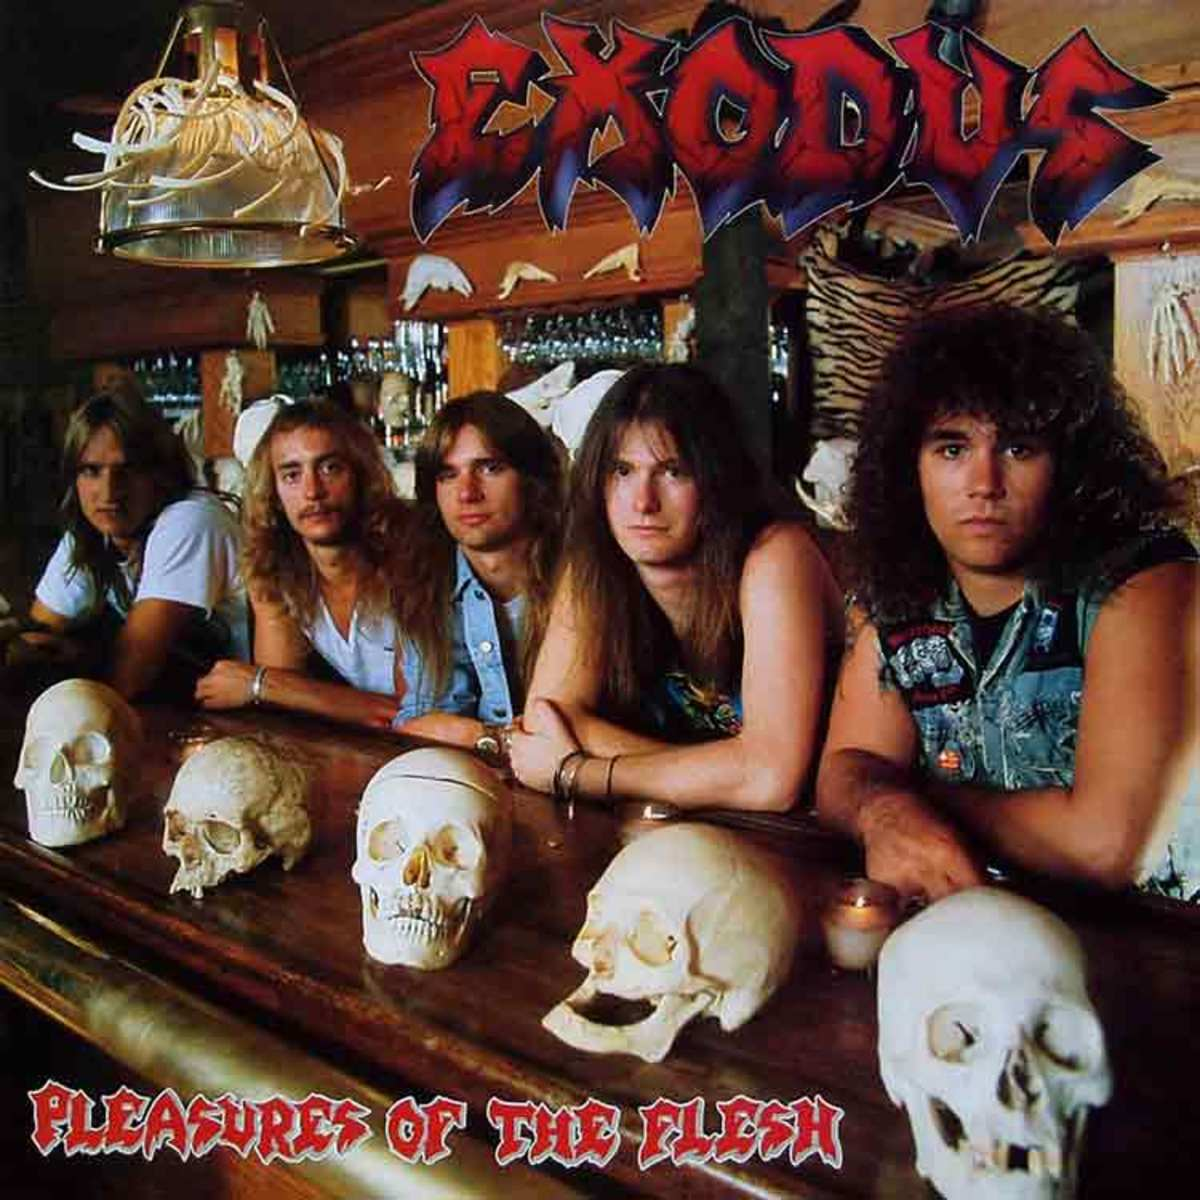 review-of-the-album-pleasures-of-the-flesh-by-american-thrash-metal-band-exodus